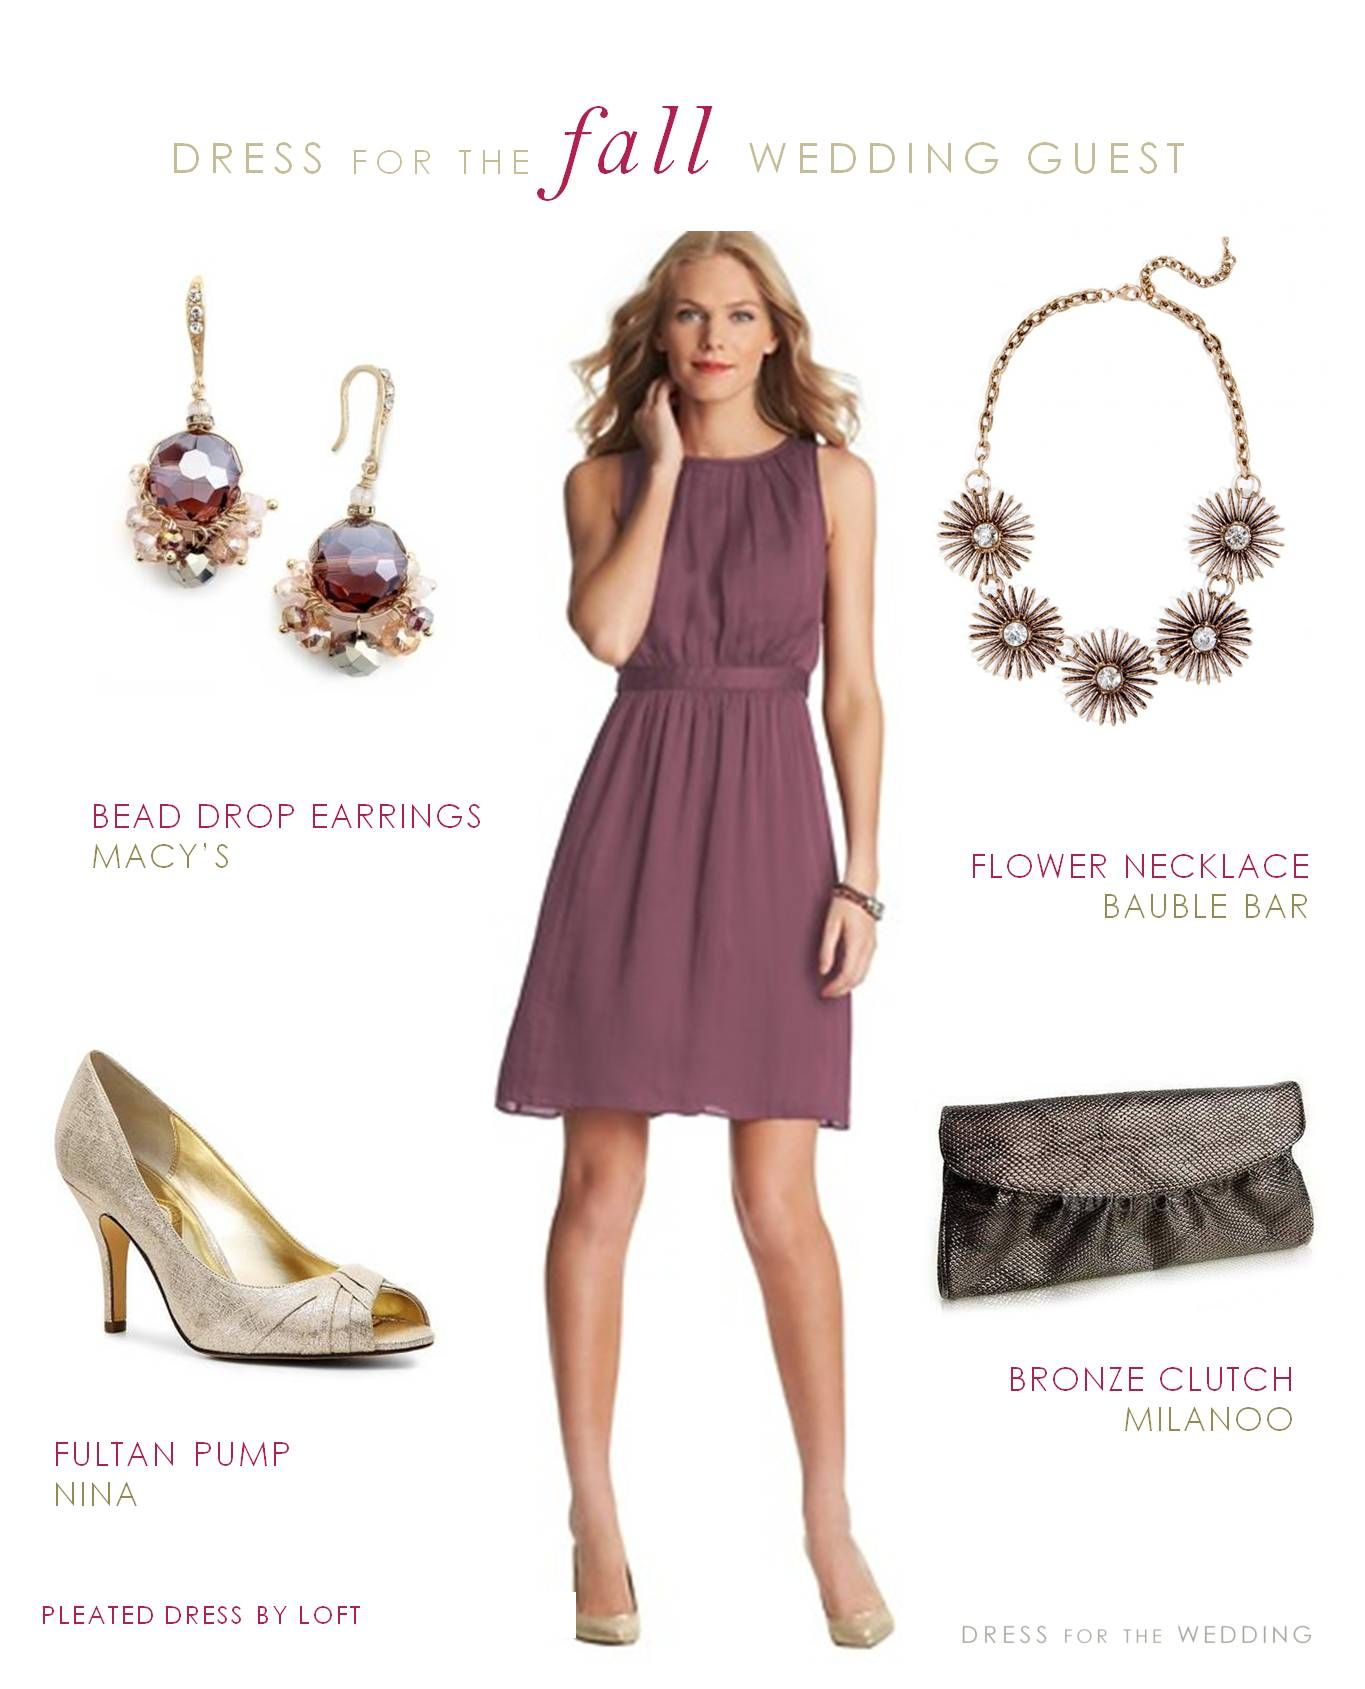 af10006b36a0 A dressy casual dress for a September wedding guest. A pretty mauve dress  with accessories ideas to wear to fall weddings.